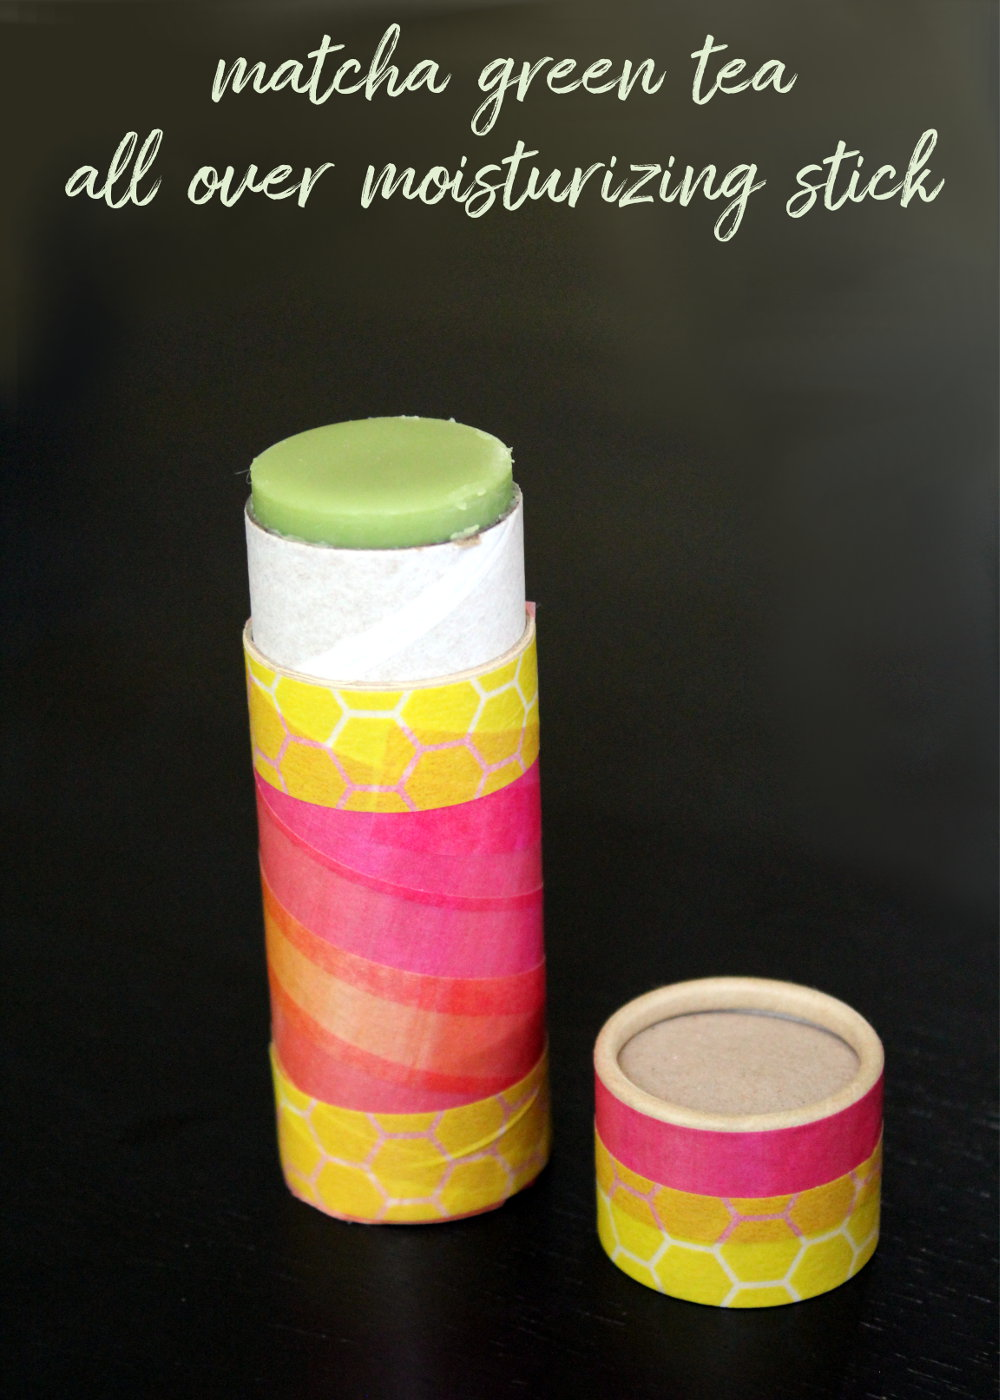 Matcha Moisturizing Stick DIY! This budget friendly DIY for crafting an organic matcha all over moisture stick recipe is a simple and affordable skin care solution that really works! Homemade with just three natural ingredients, this moisturizing stick nourishes, conditions and protects skin all over your body - lips included - without busting your budget!